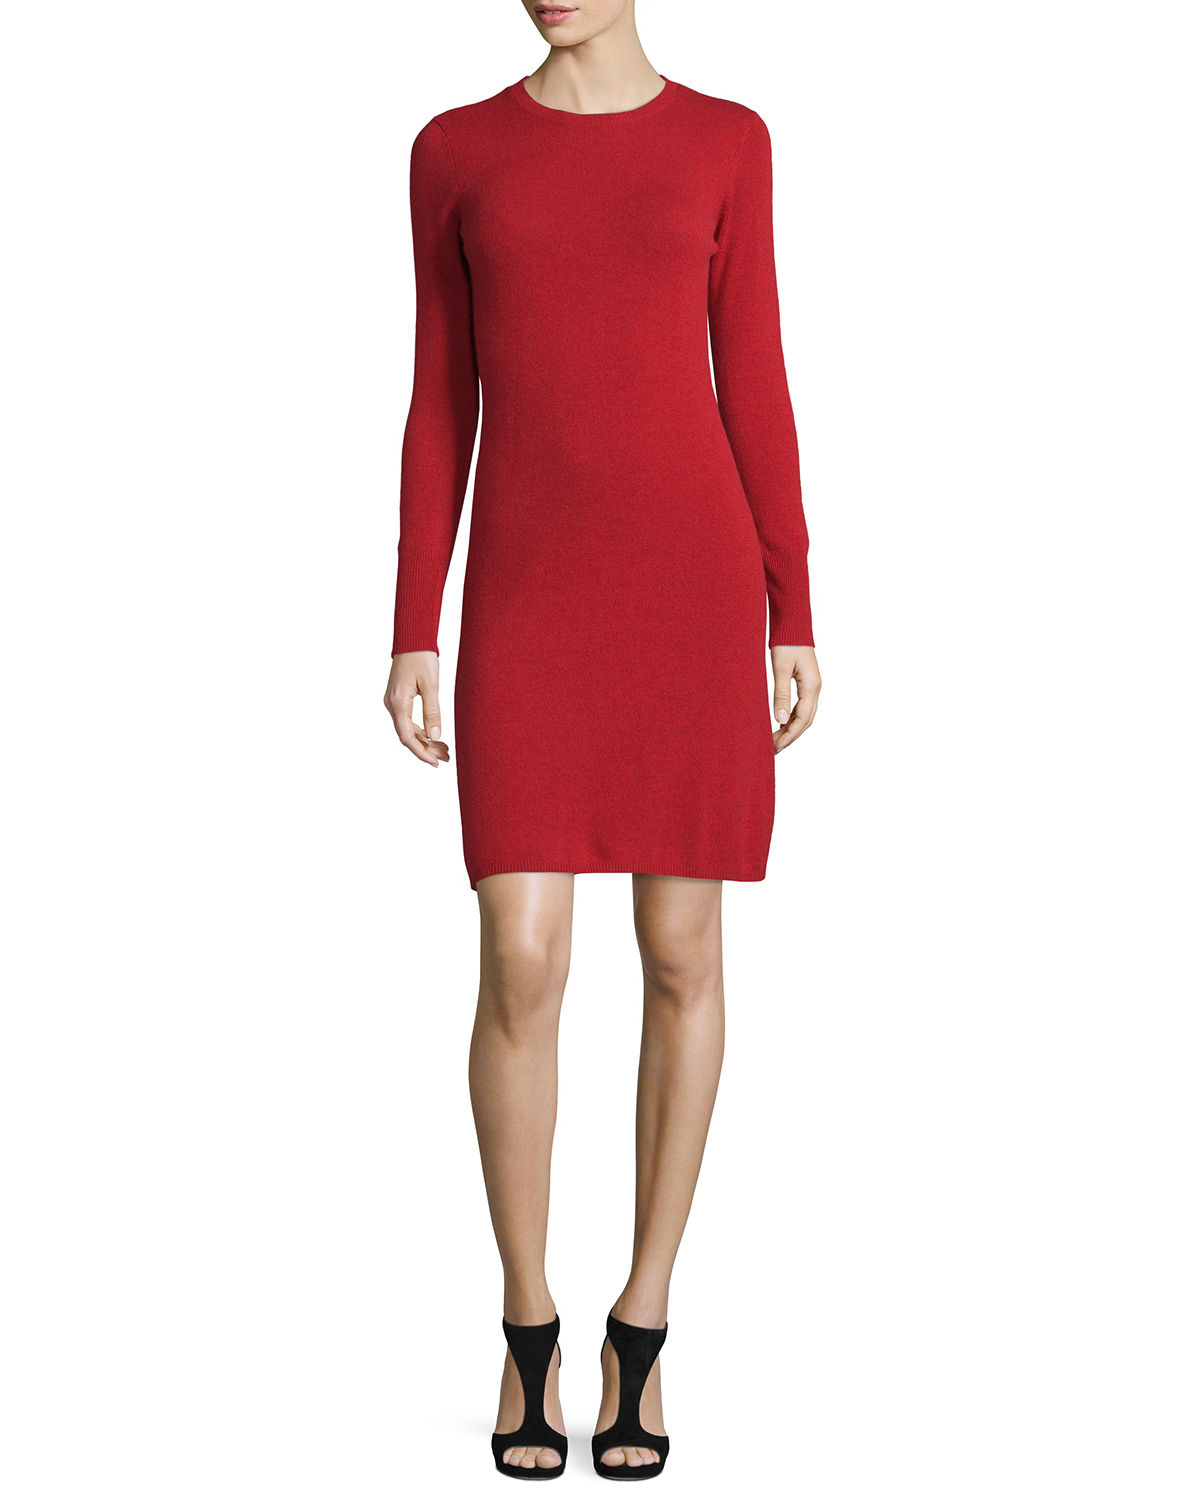 Neiman marcus Cashmere Crewneck Sweater Dress in Red | Lyst